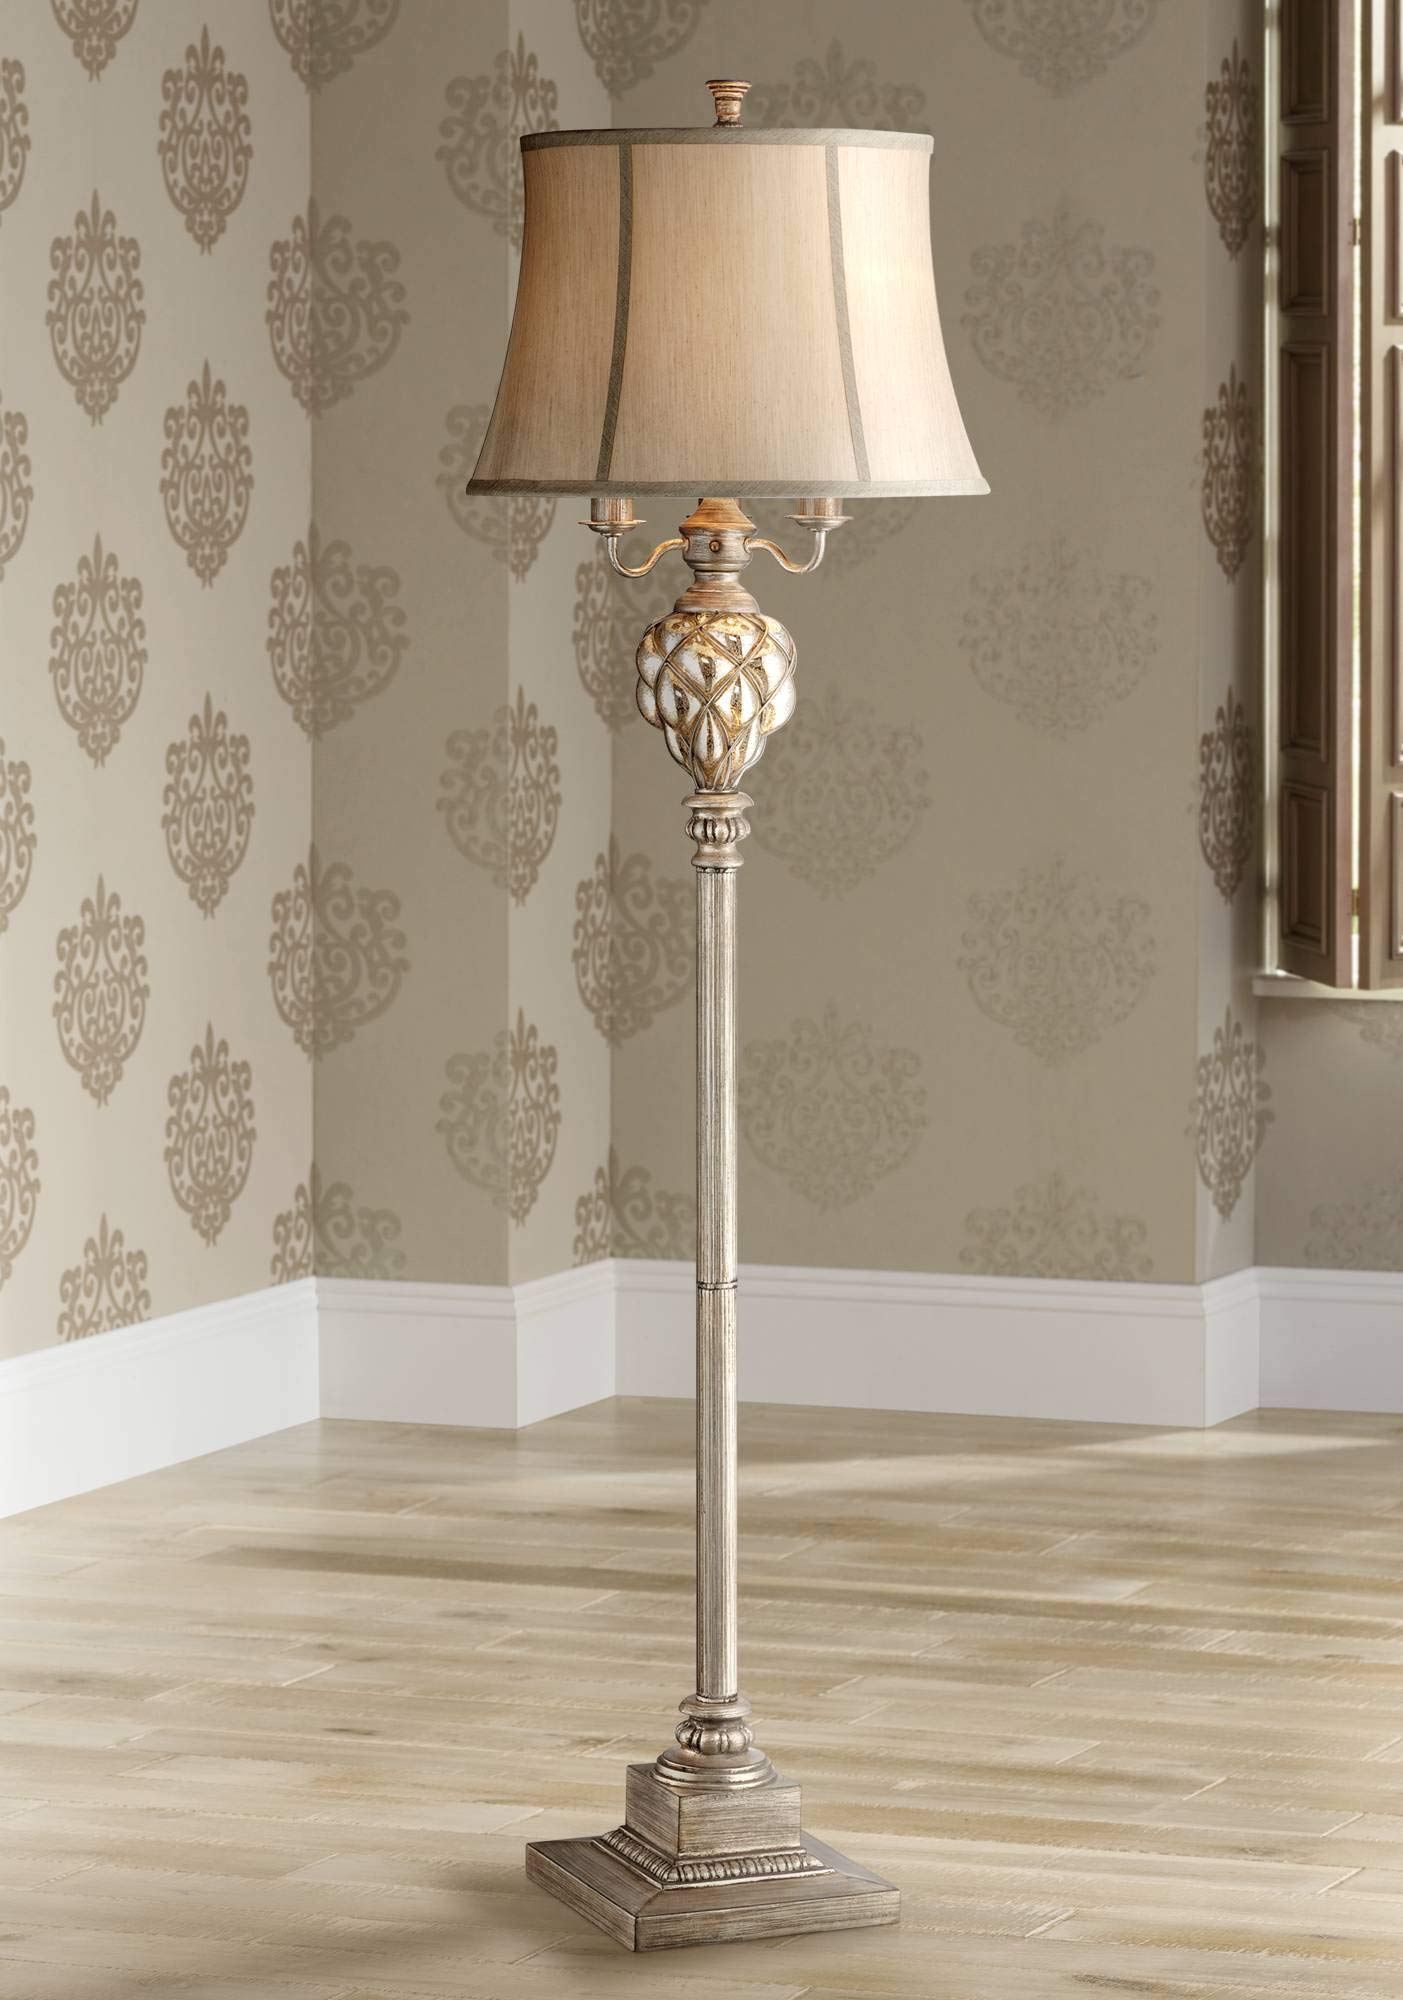 Olde Traditional Floor Lamp with Nightlight LED Olde Silver Mercury Glass Faux Silk Bell Shade for Living Room Reading - Barnes and Ivy